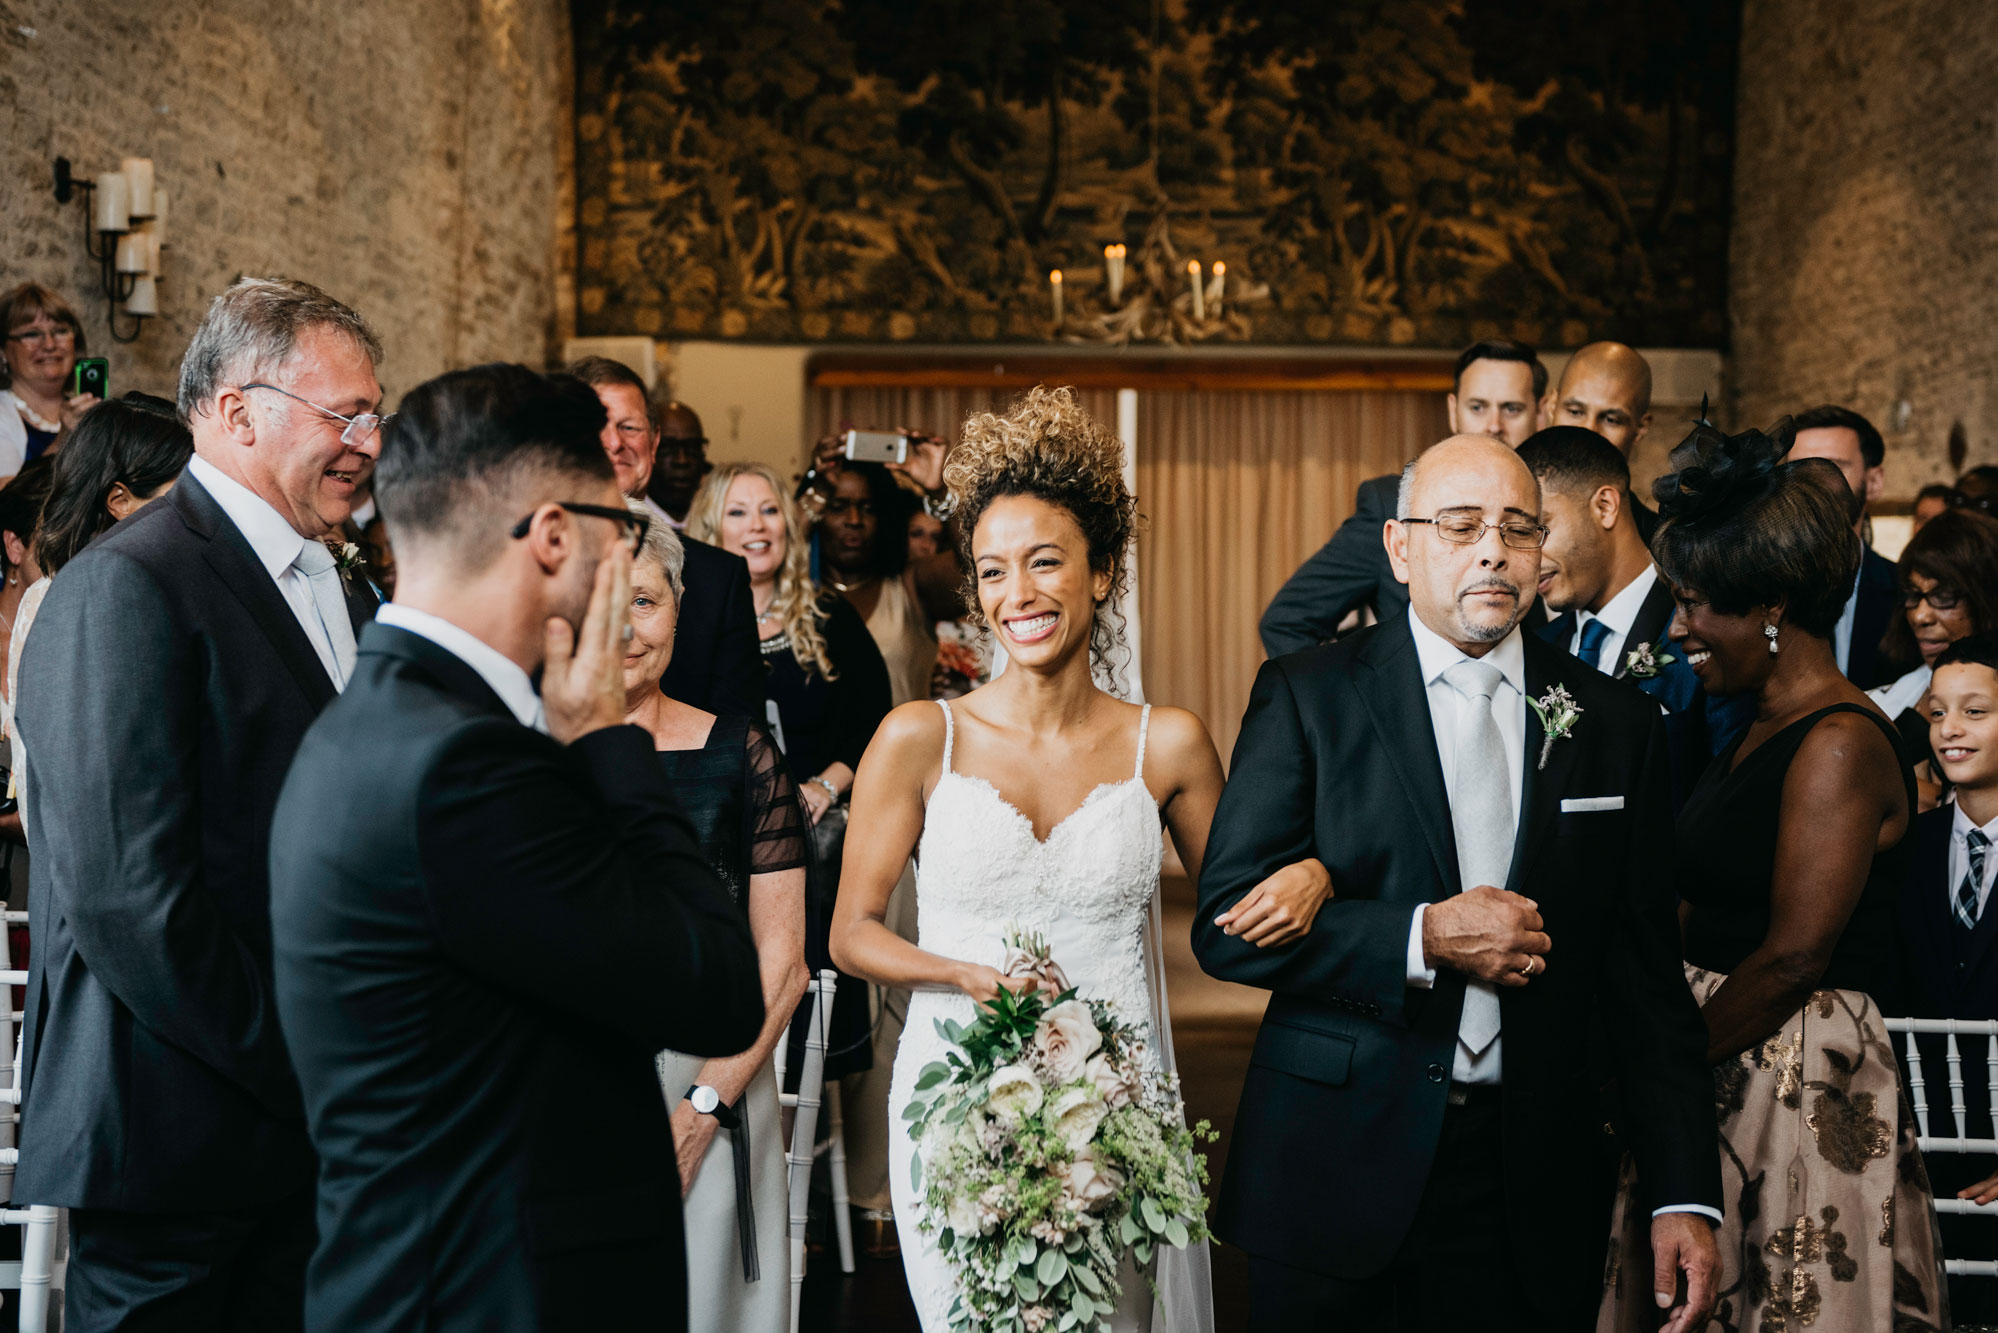 groom seeing his bride for the first time at merrisscourt barn